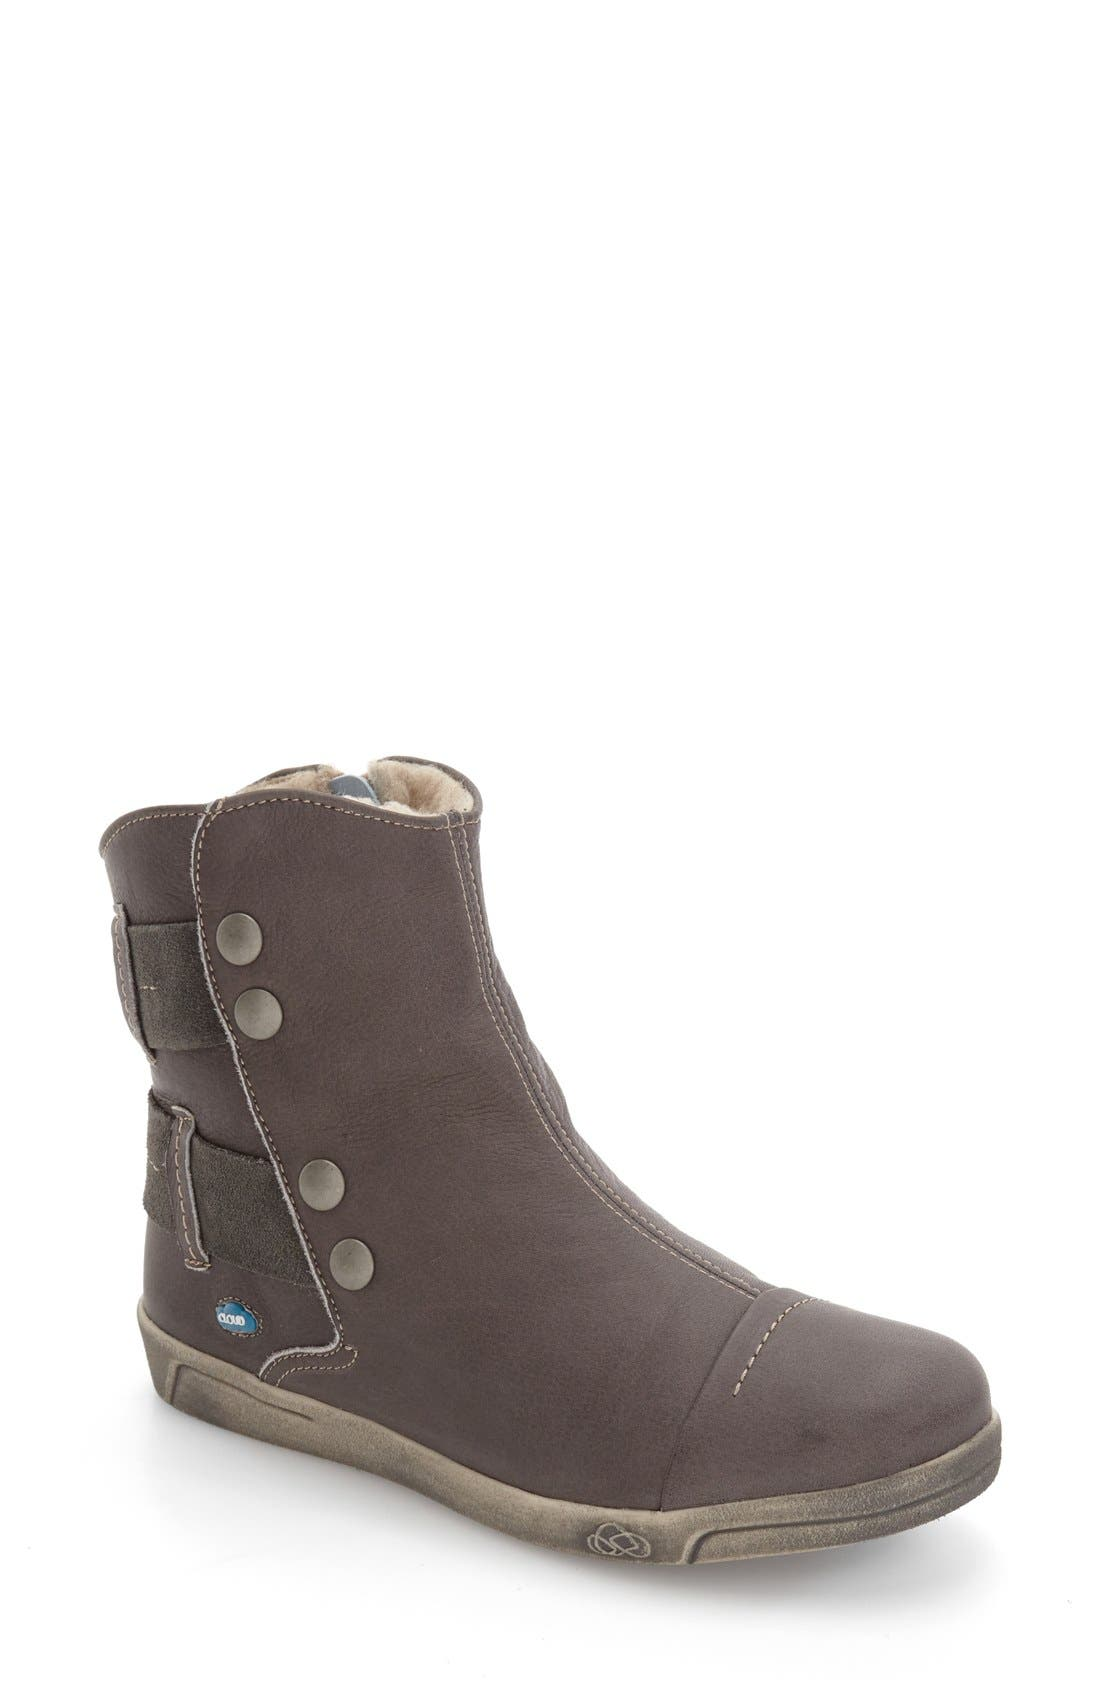 'Aline' Faux Shearling Lined Bootie,                             Main thumbnail 1, color,                             Dark Grey Leather